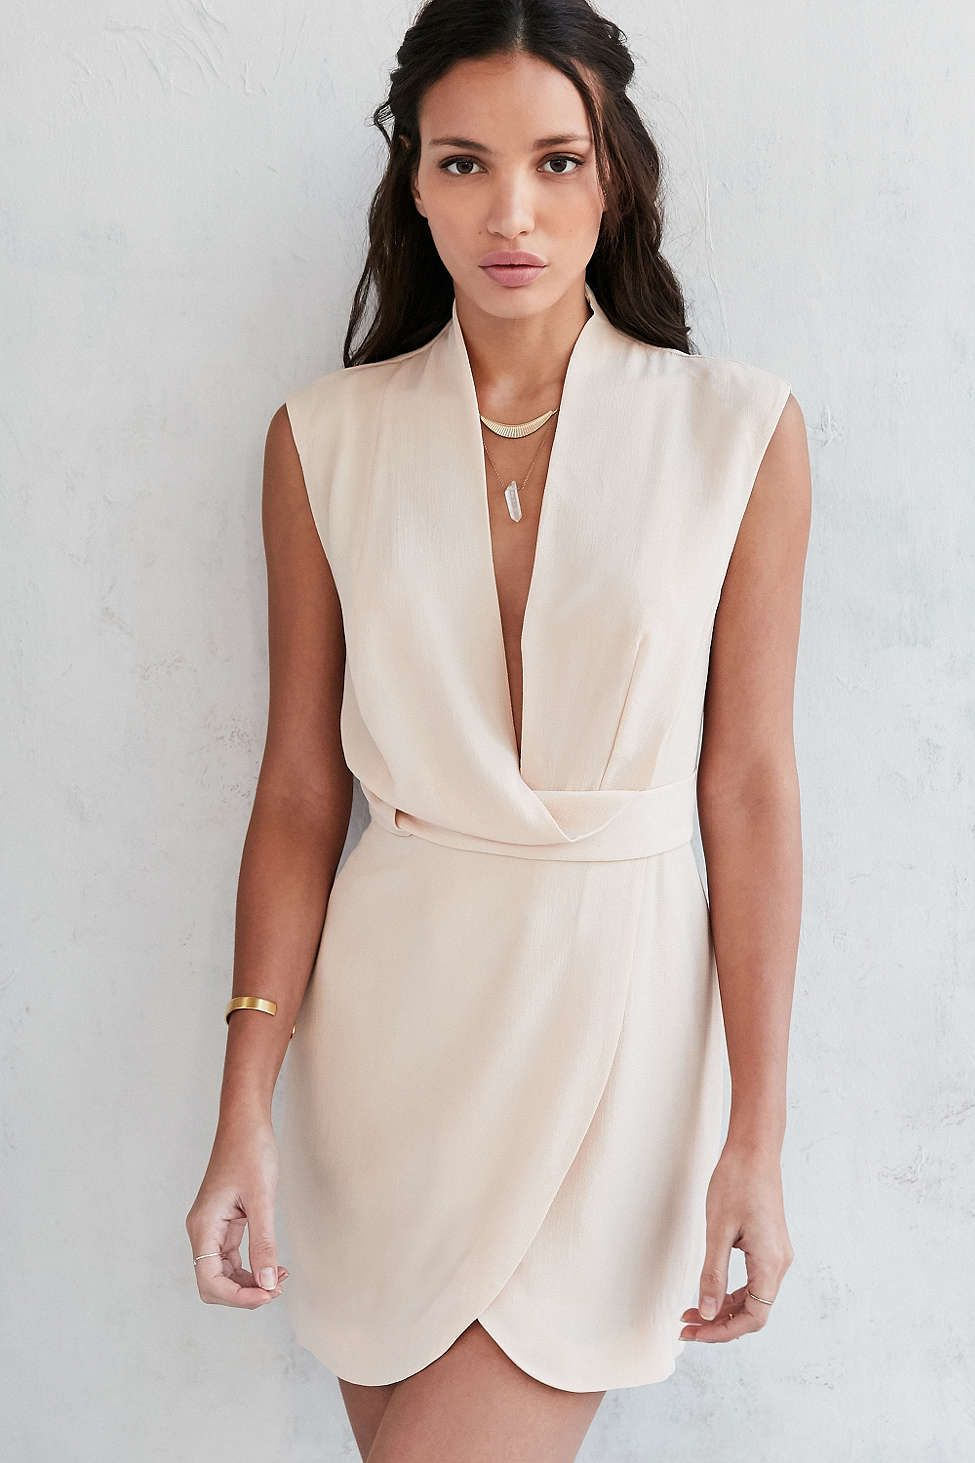 Finders keepers summer dress white